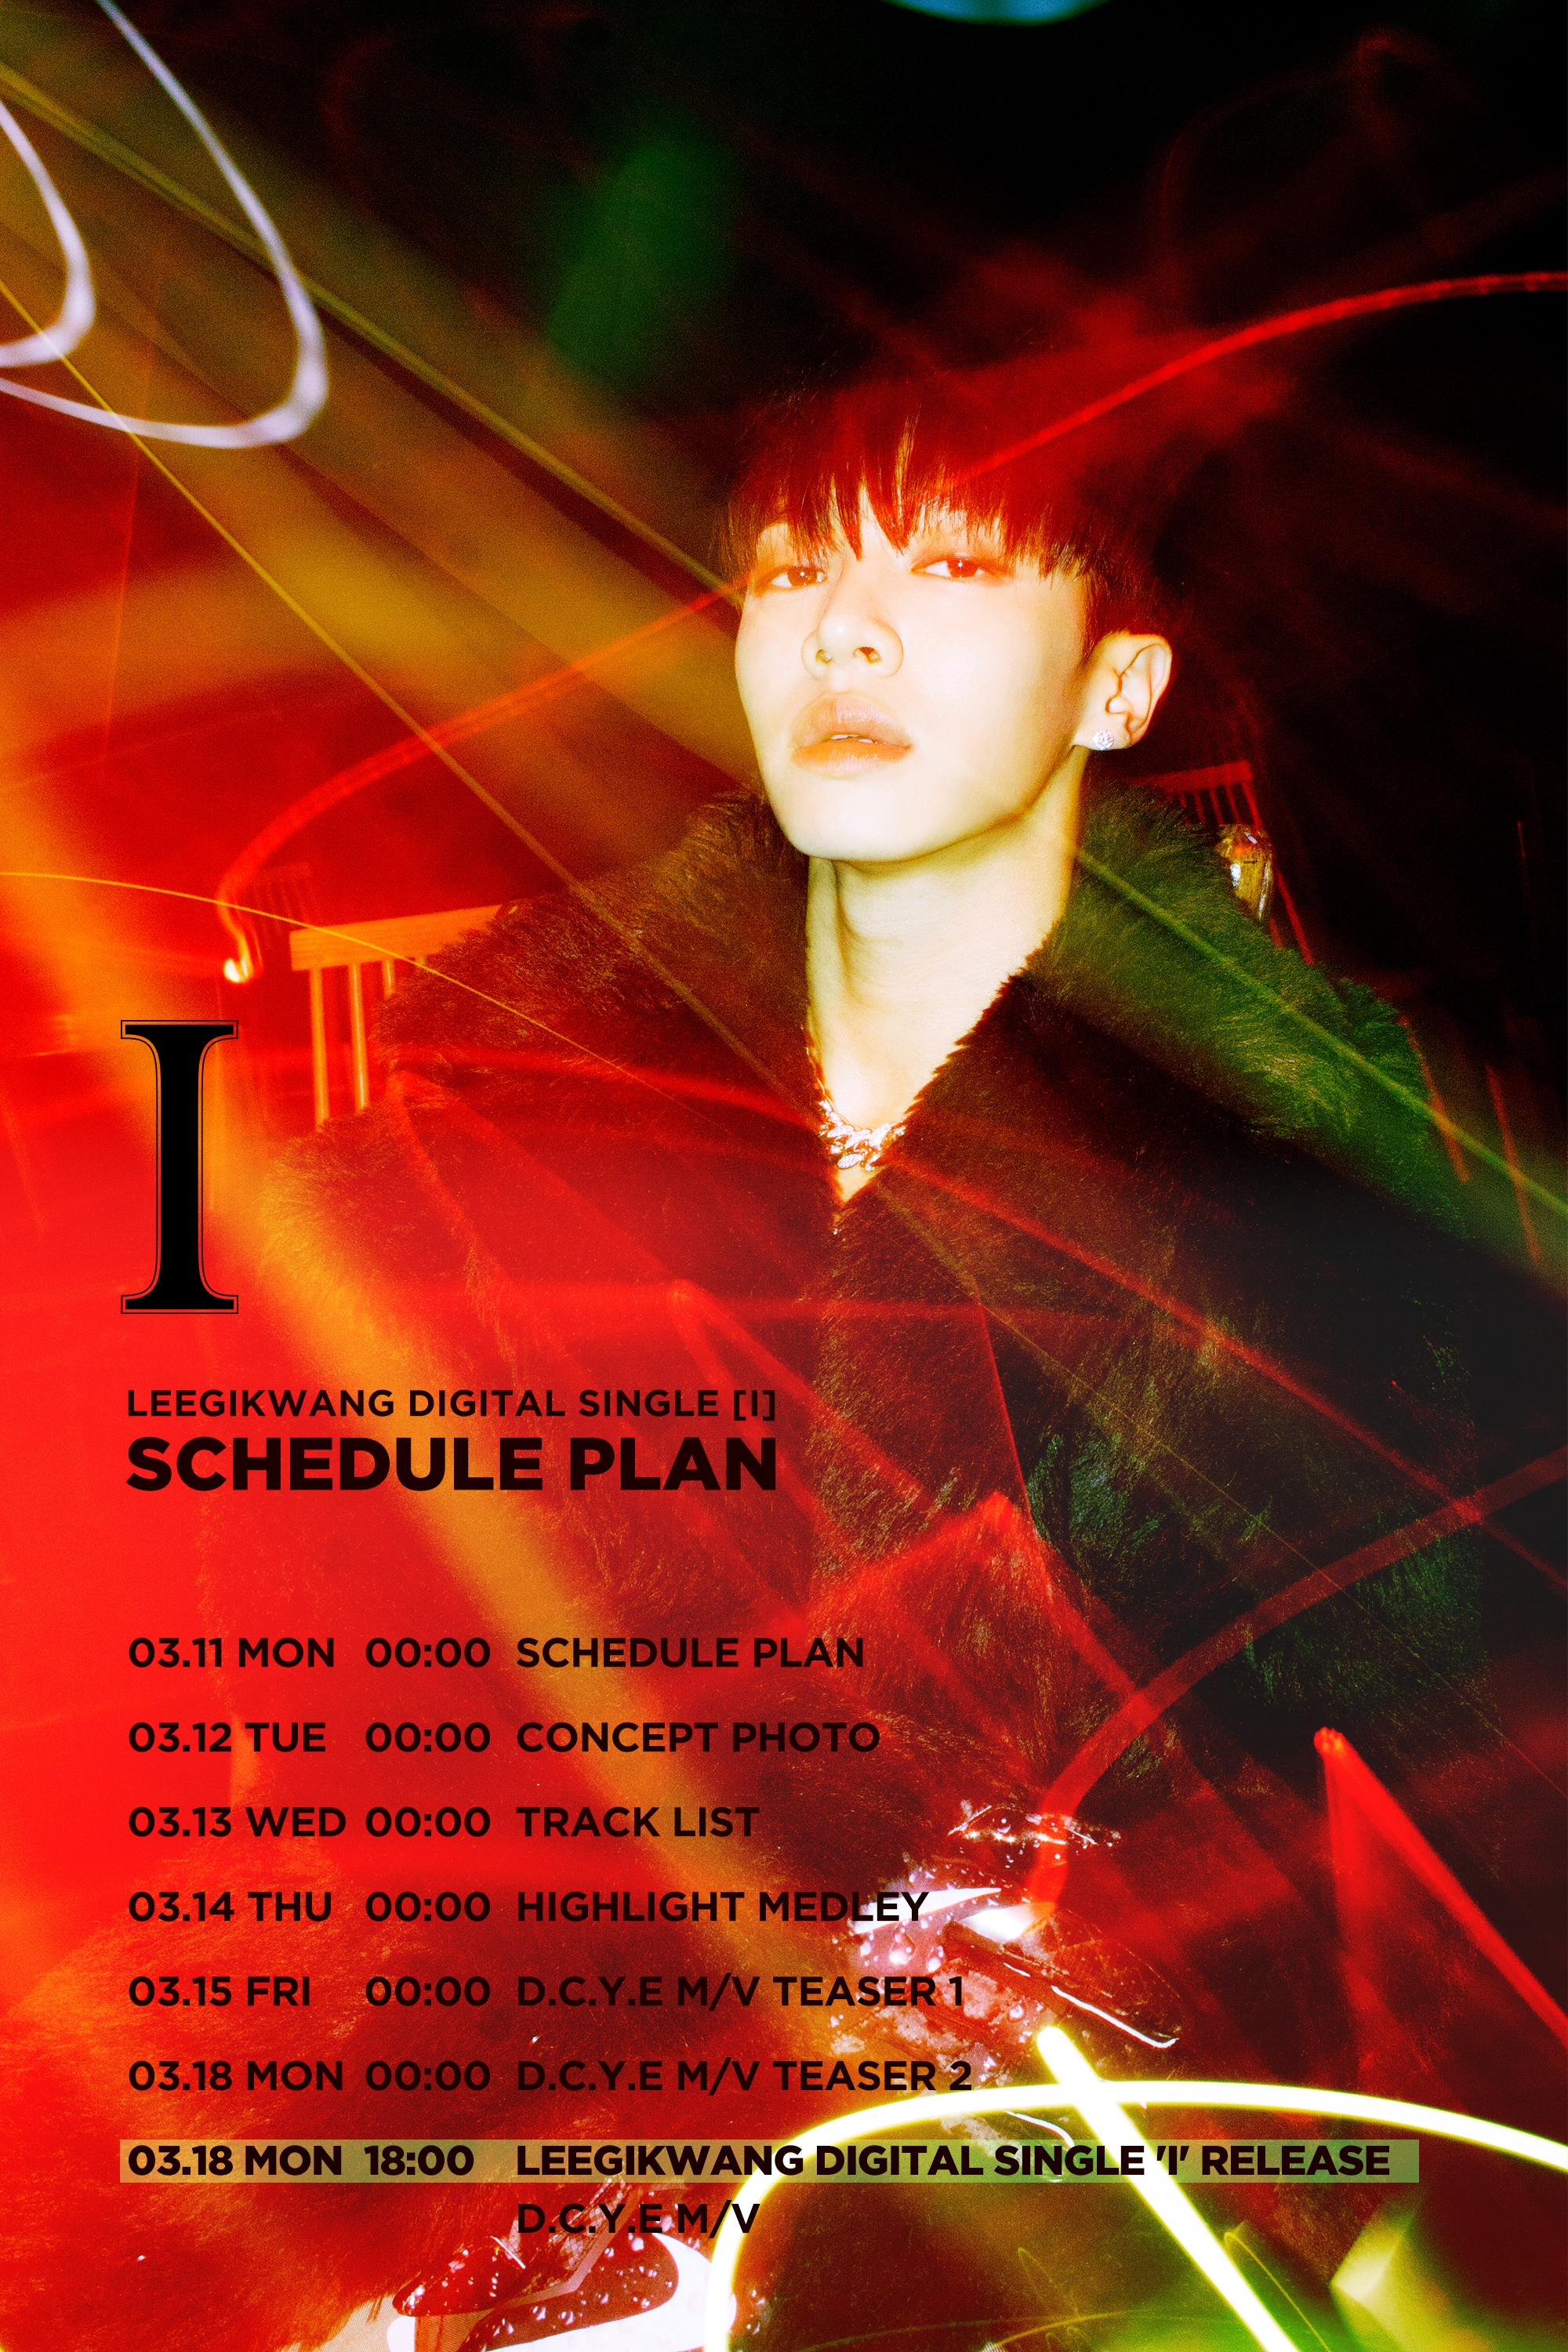 LGK_DS_I_SCHEDULE PLAN